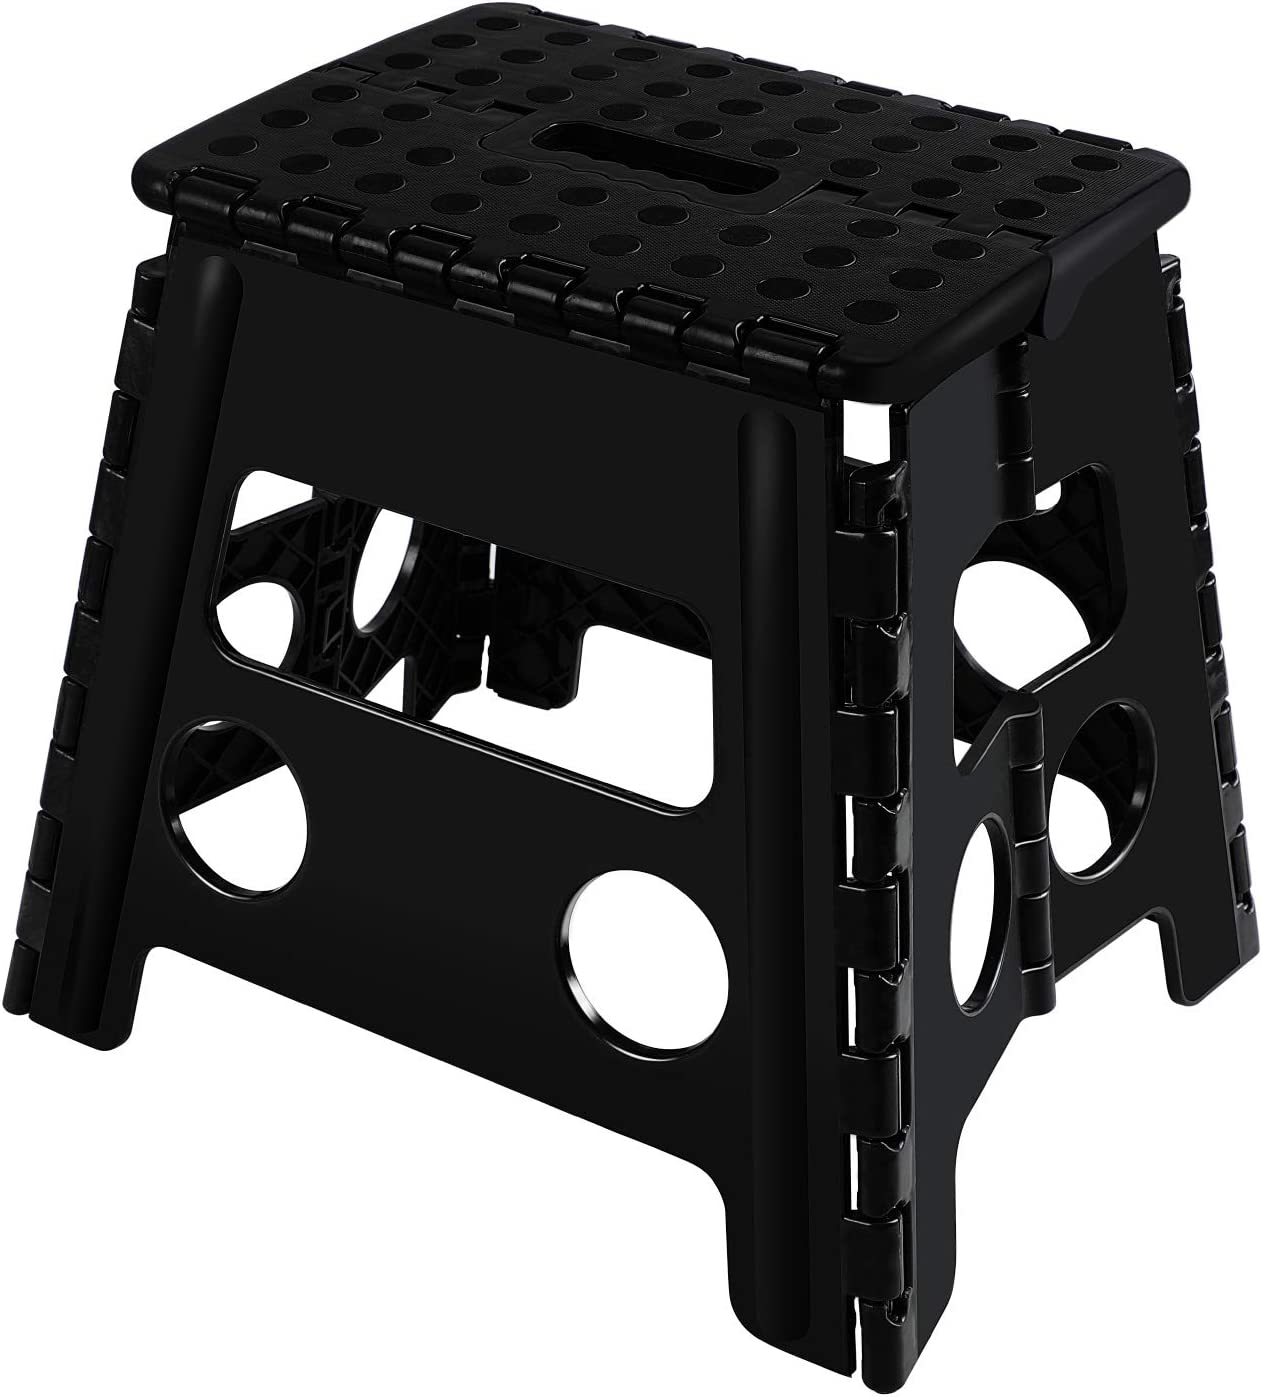 Topfun Folding Step Stool, 13 inch Non-Slip Footstool for Adults or Kids, Sturdy Safe Enough, Holds up to 300 Lb, Foldable Step Stools Storage/Open Easy, for Kitchen,Toilet,Office,RV (Black, 13inch)